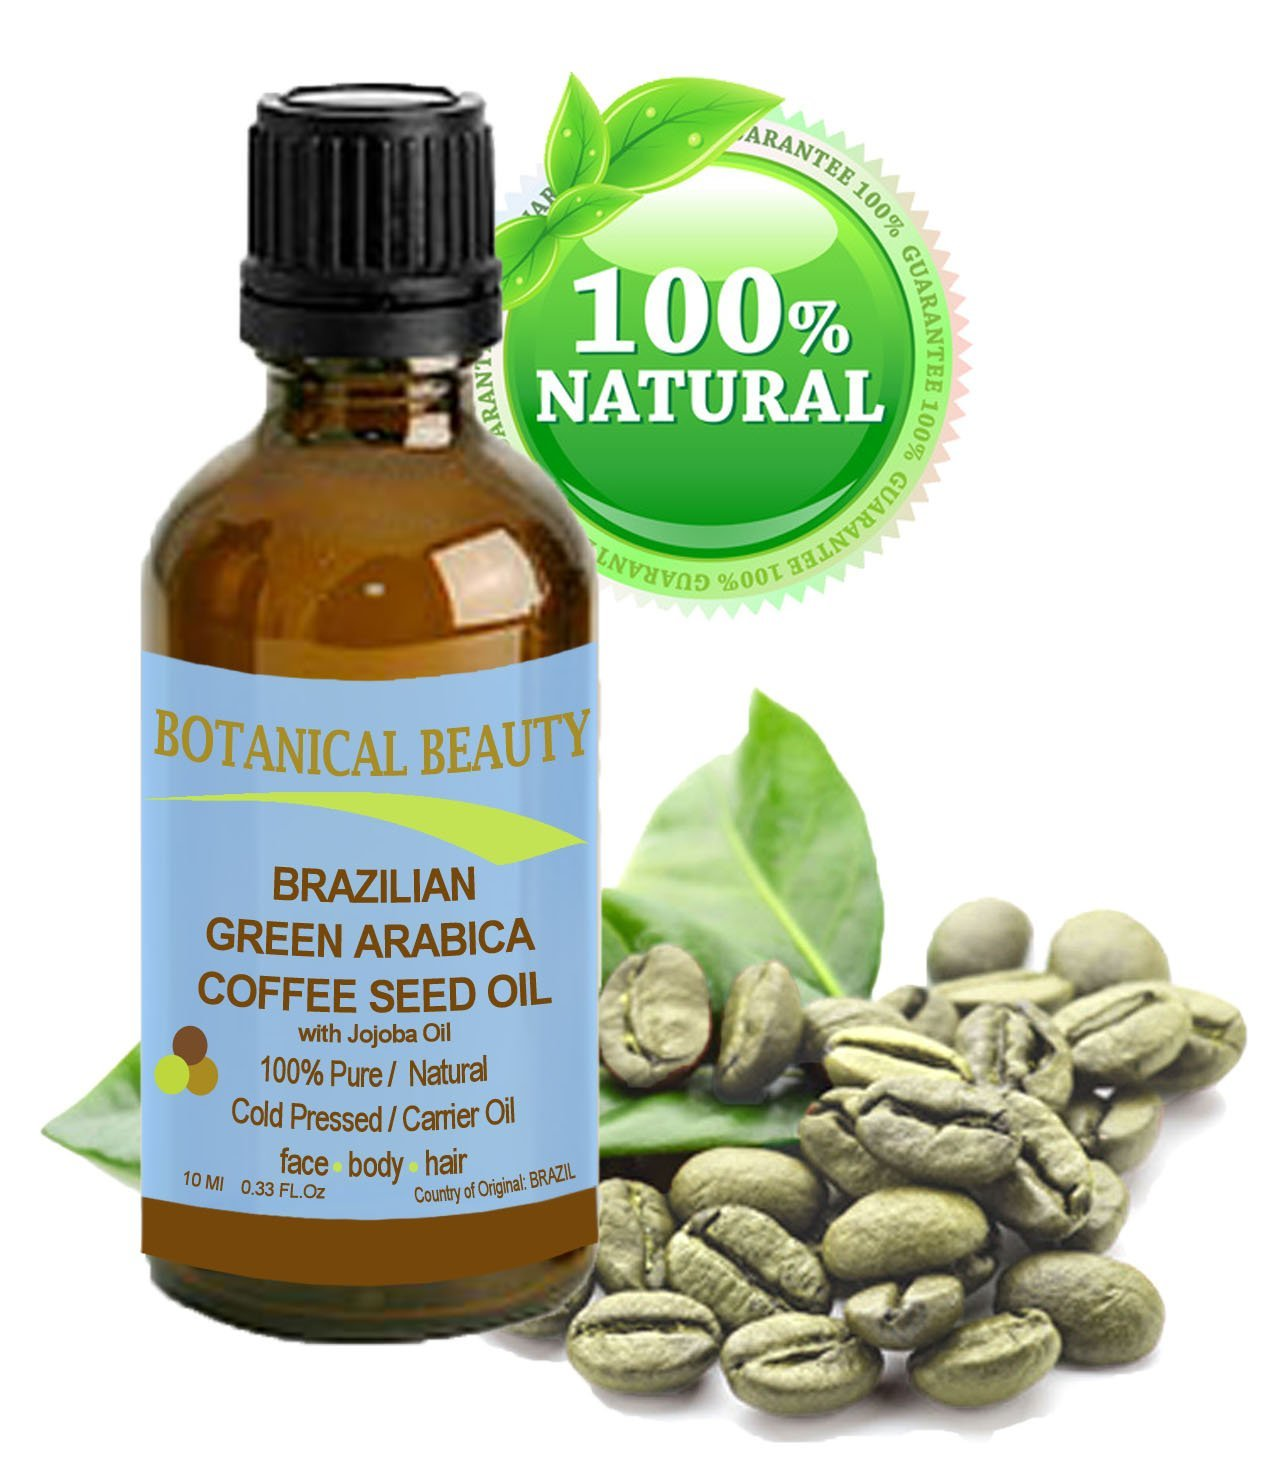 Brazilian GREEN ARABICA COFFEE SEED OIL. 100% Pure / Natural Cold Pressed Carrier Oil for Skin, Hair, Lip and Nail Care. Wrinkle Reducer, Skin Tone /Lift, Anti- Puffiness / Dark Circles, Anti Cellulite. (0.33 fl.oz-10ml.)